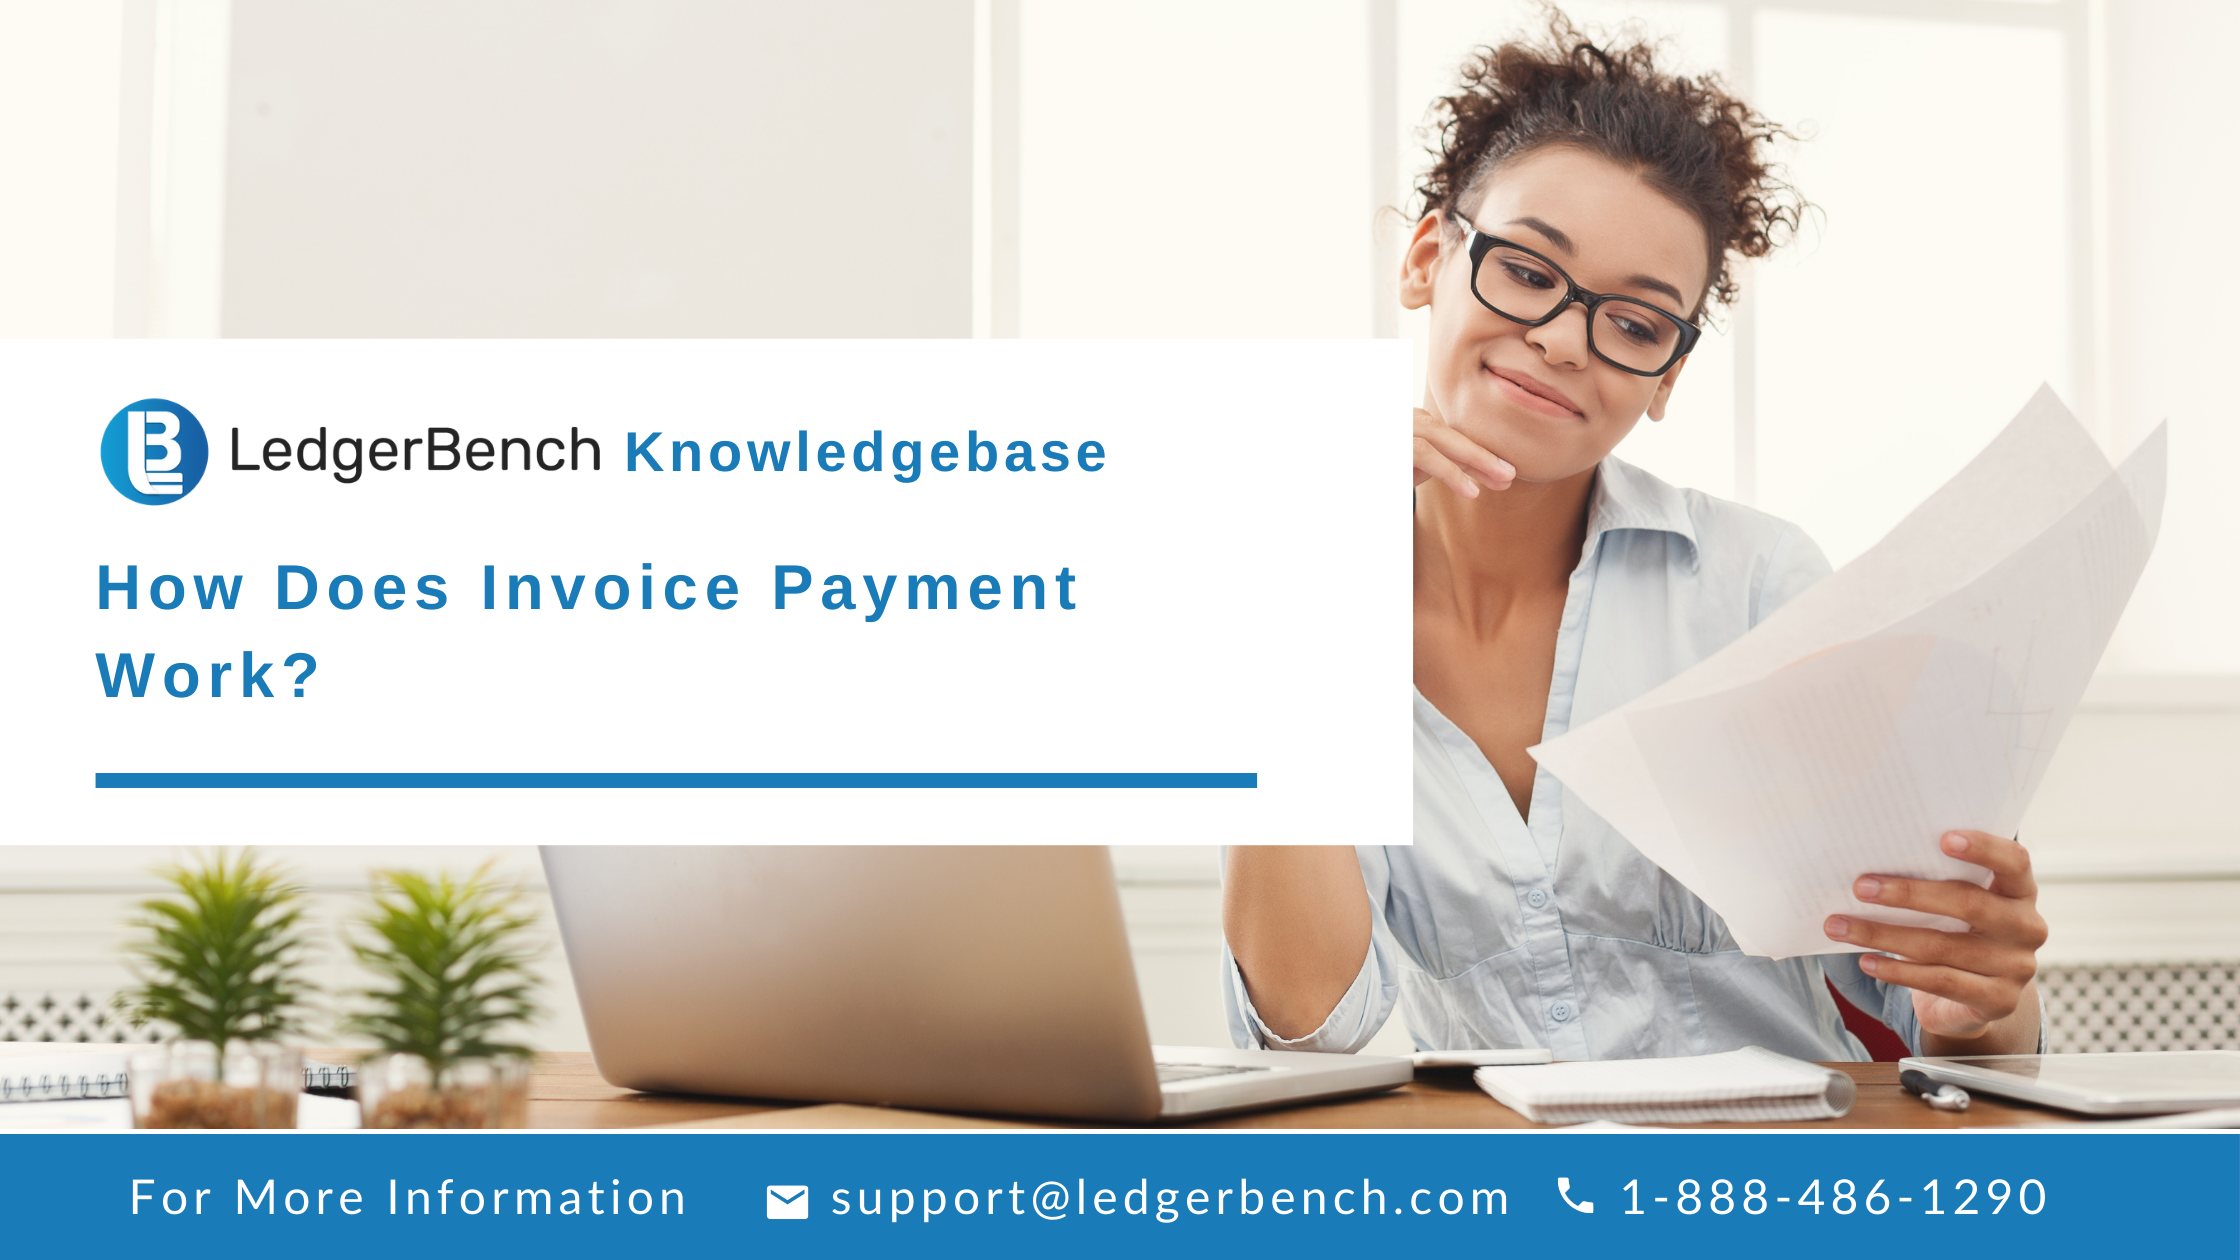 How Does Invoice Payment Work